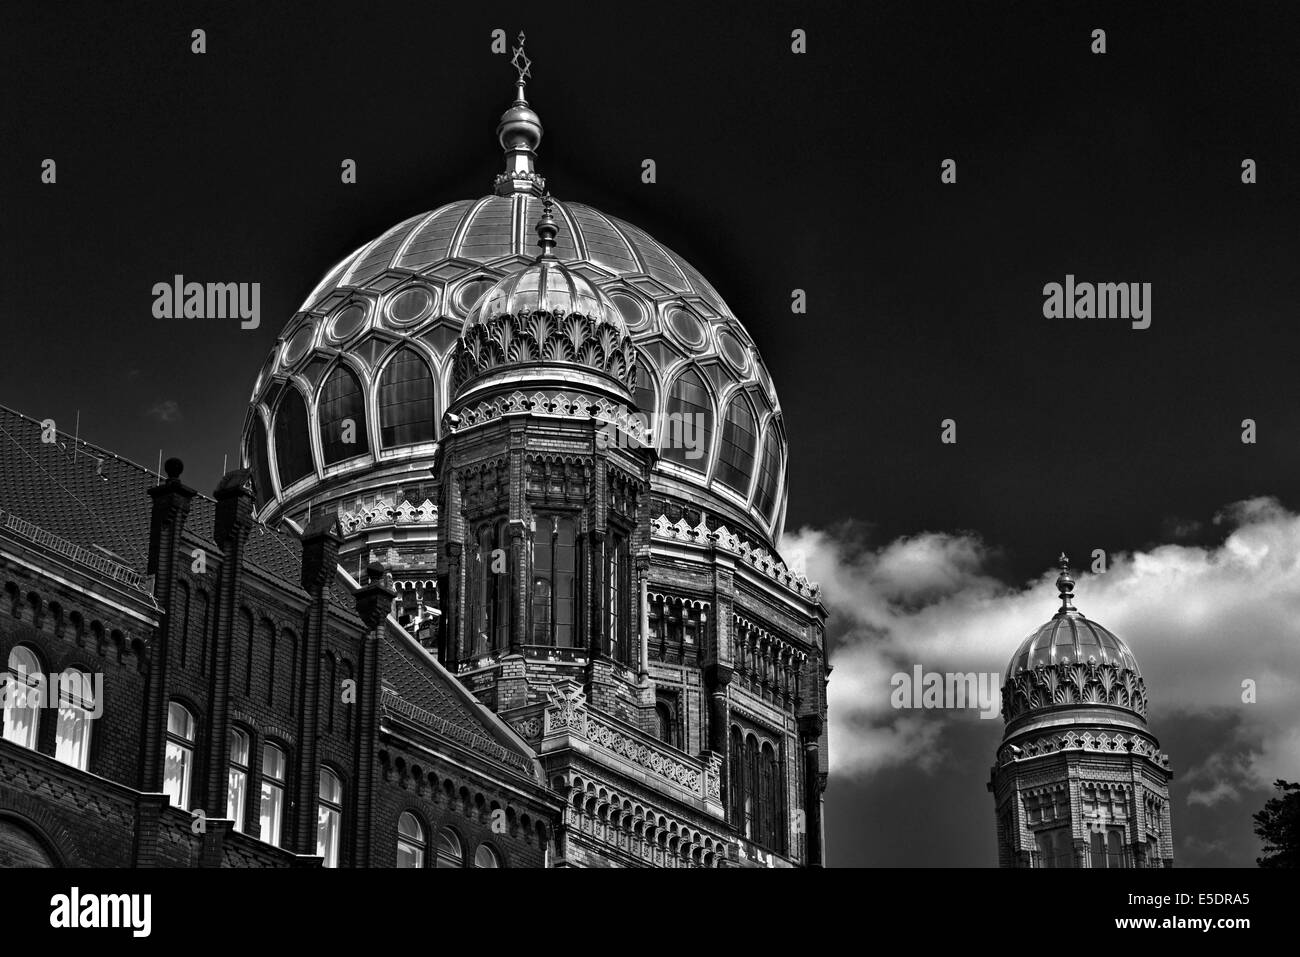 Germany, Berlin: Golden cupola of the New Synagogue - Stock Image